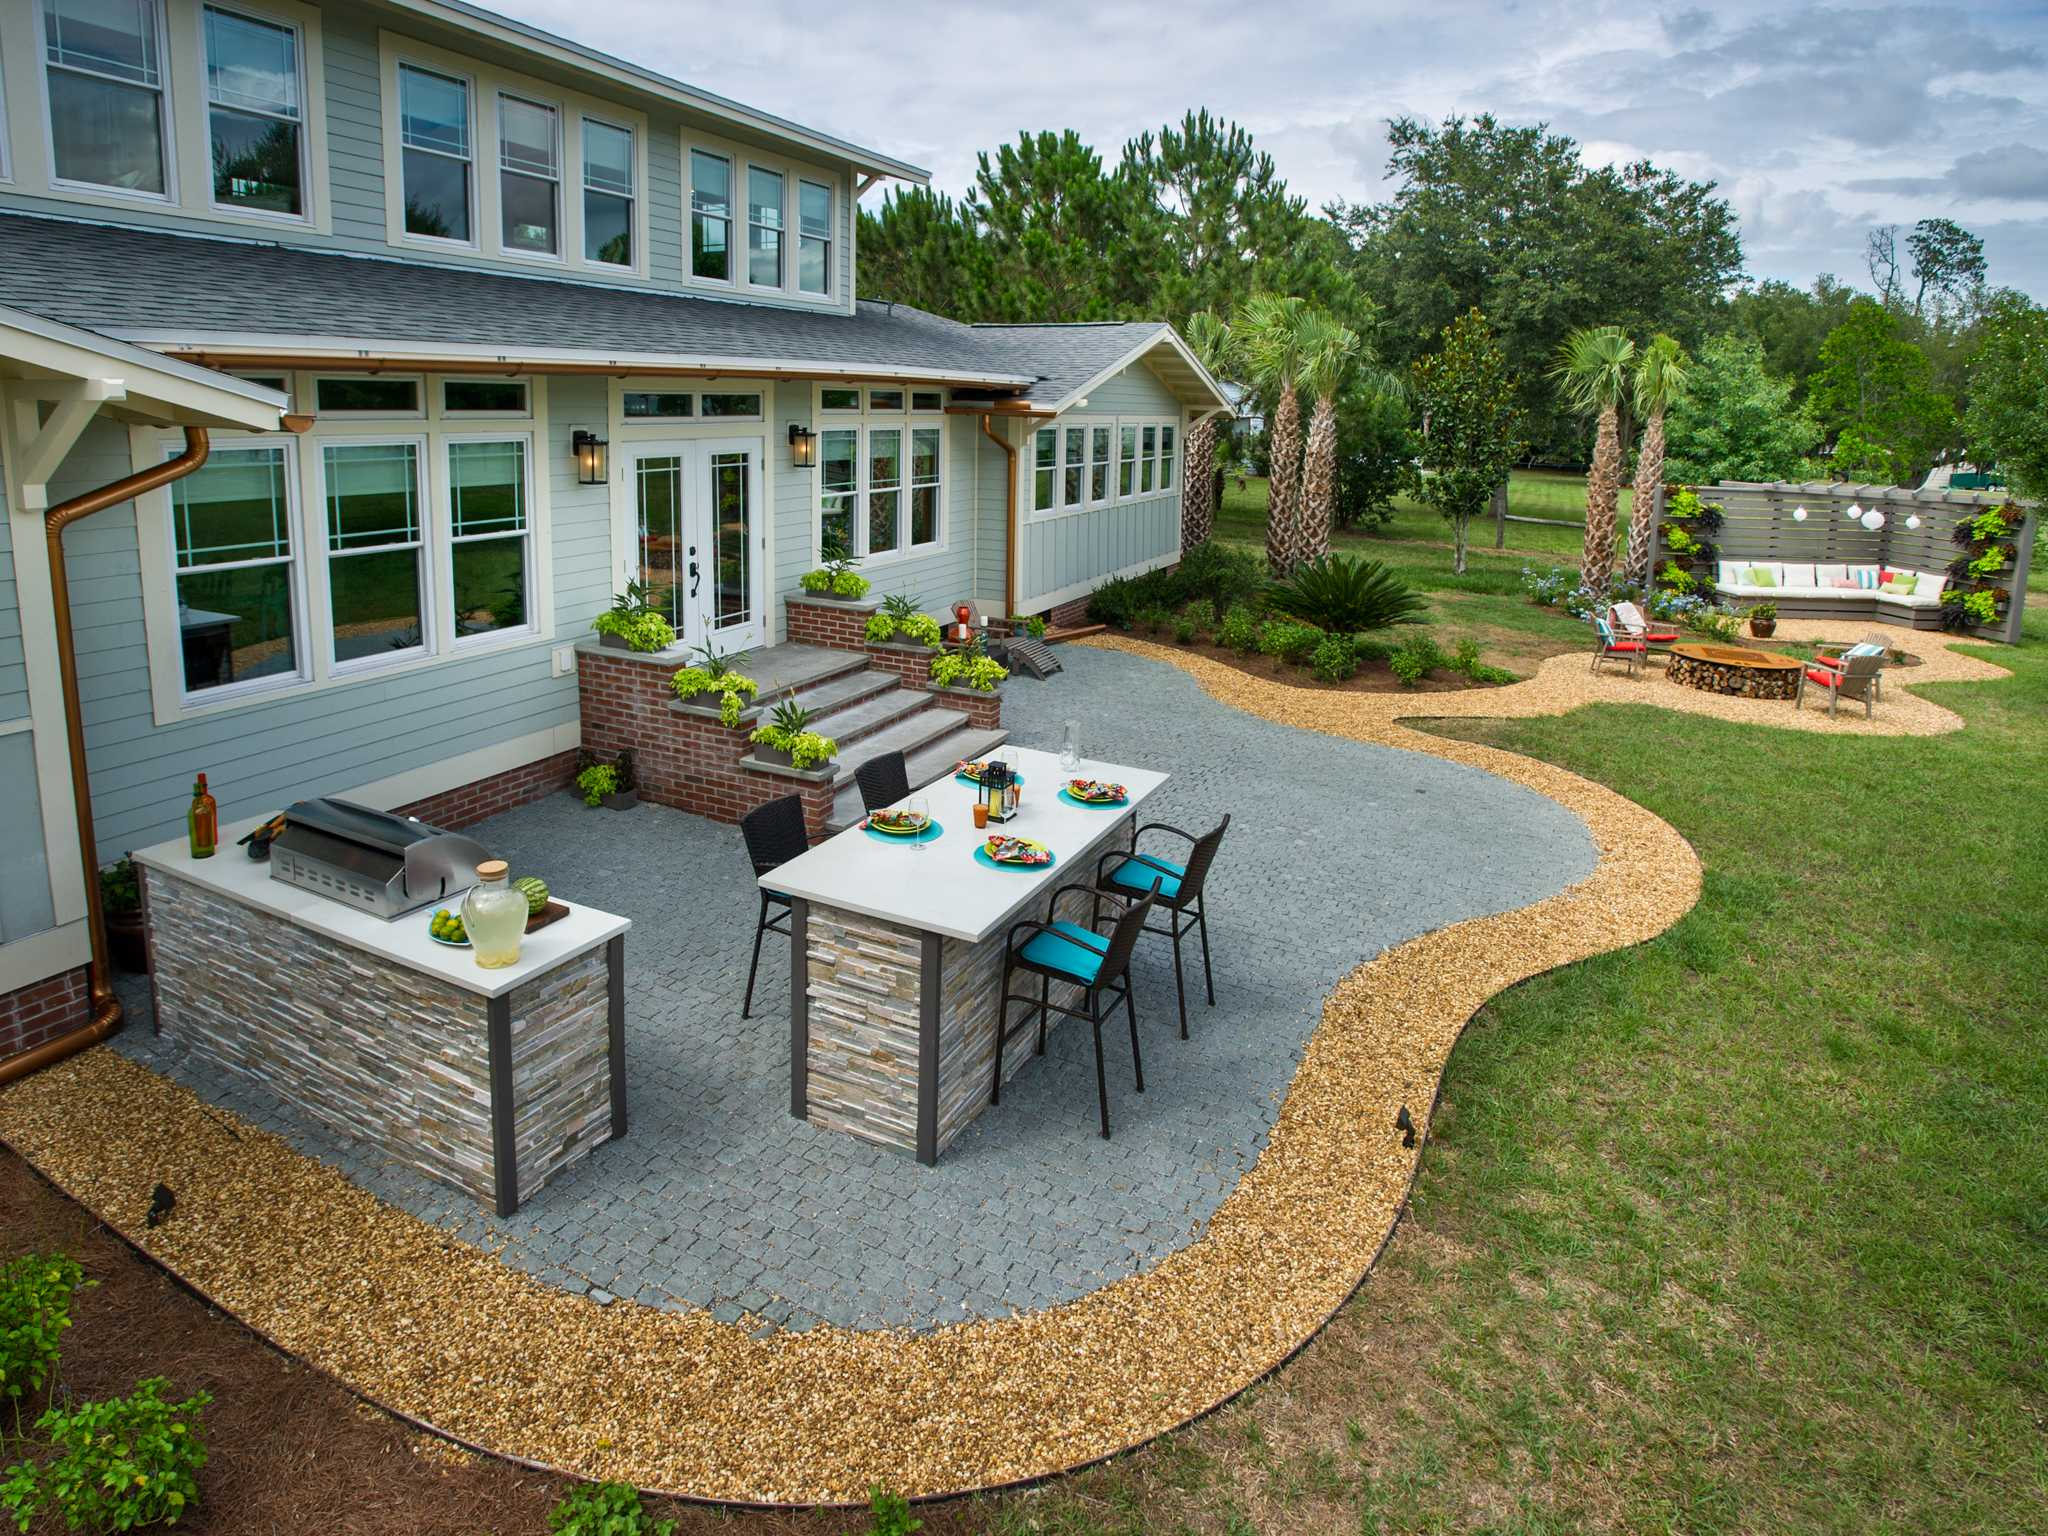 10 Inspiring Concrete Patio Ideas For Your Backyard 2020 Guide Pmcaonline